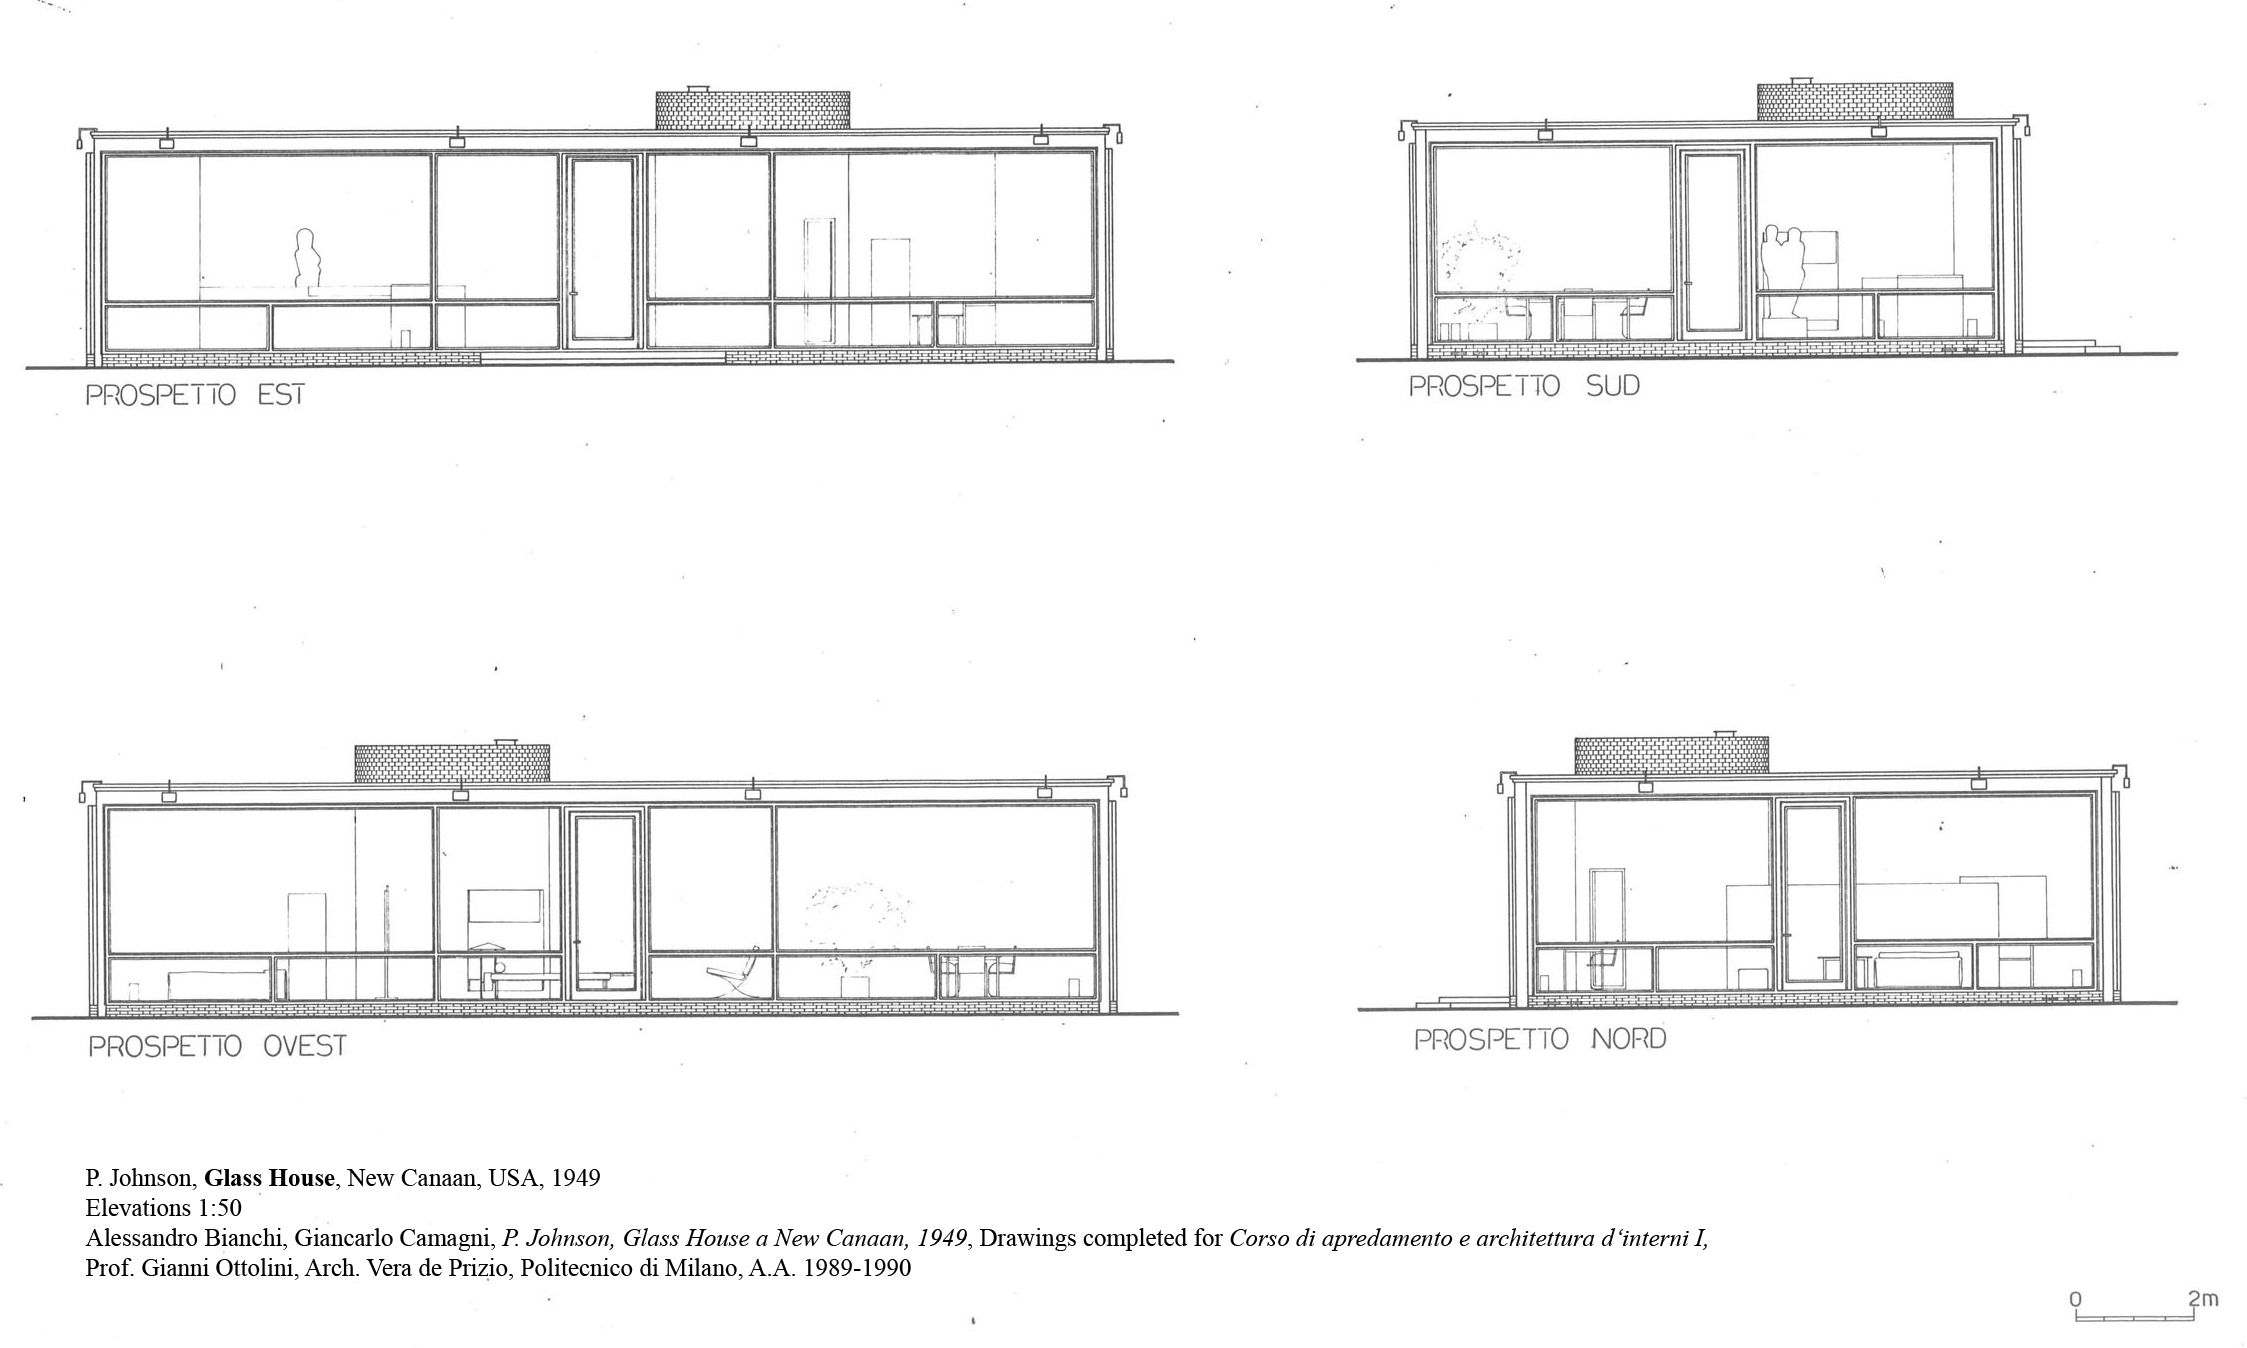 Philip johnson glass house layout